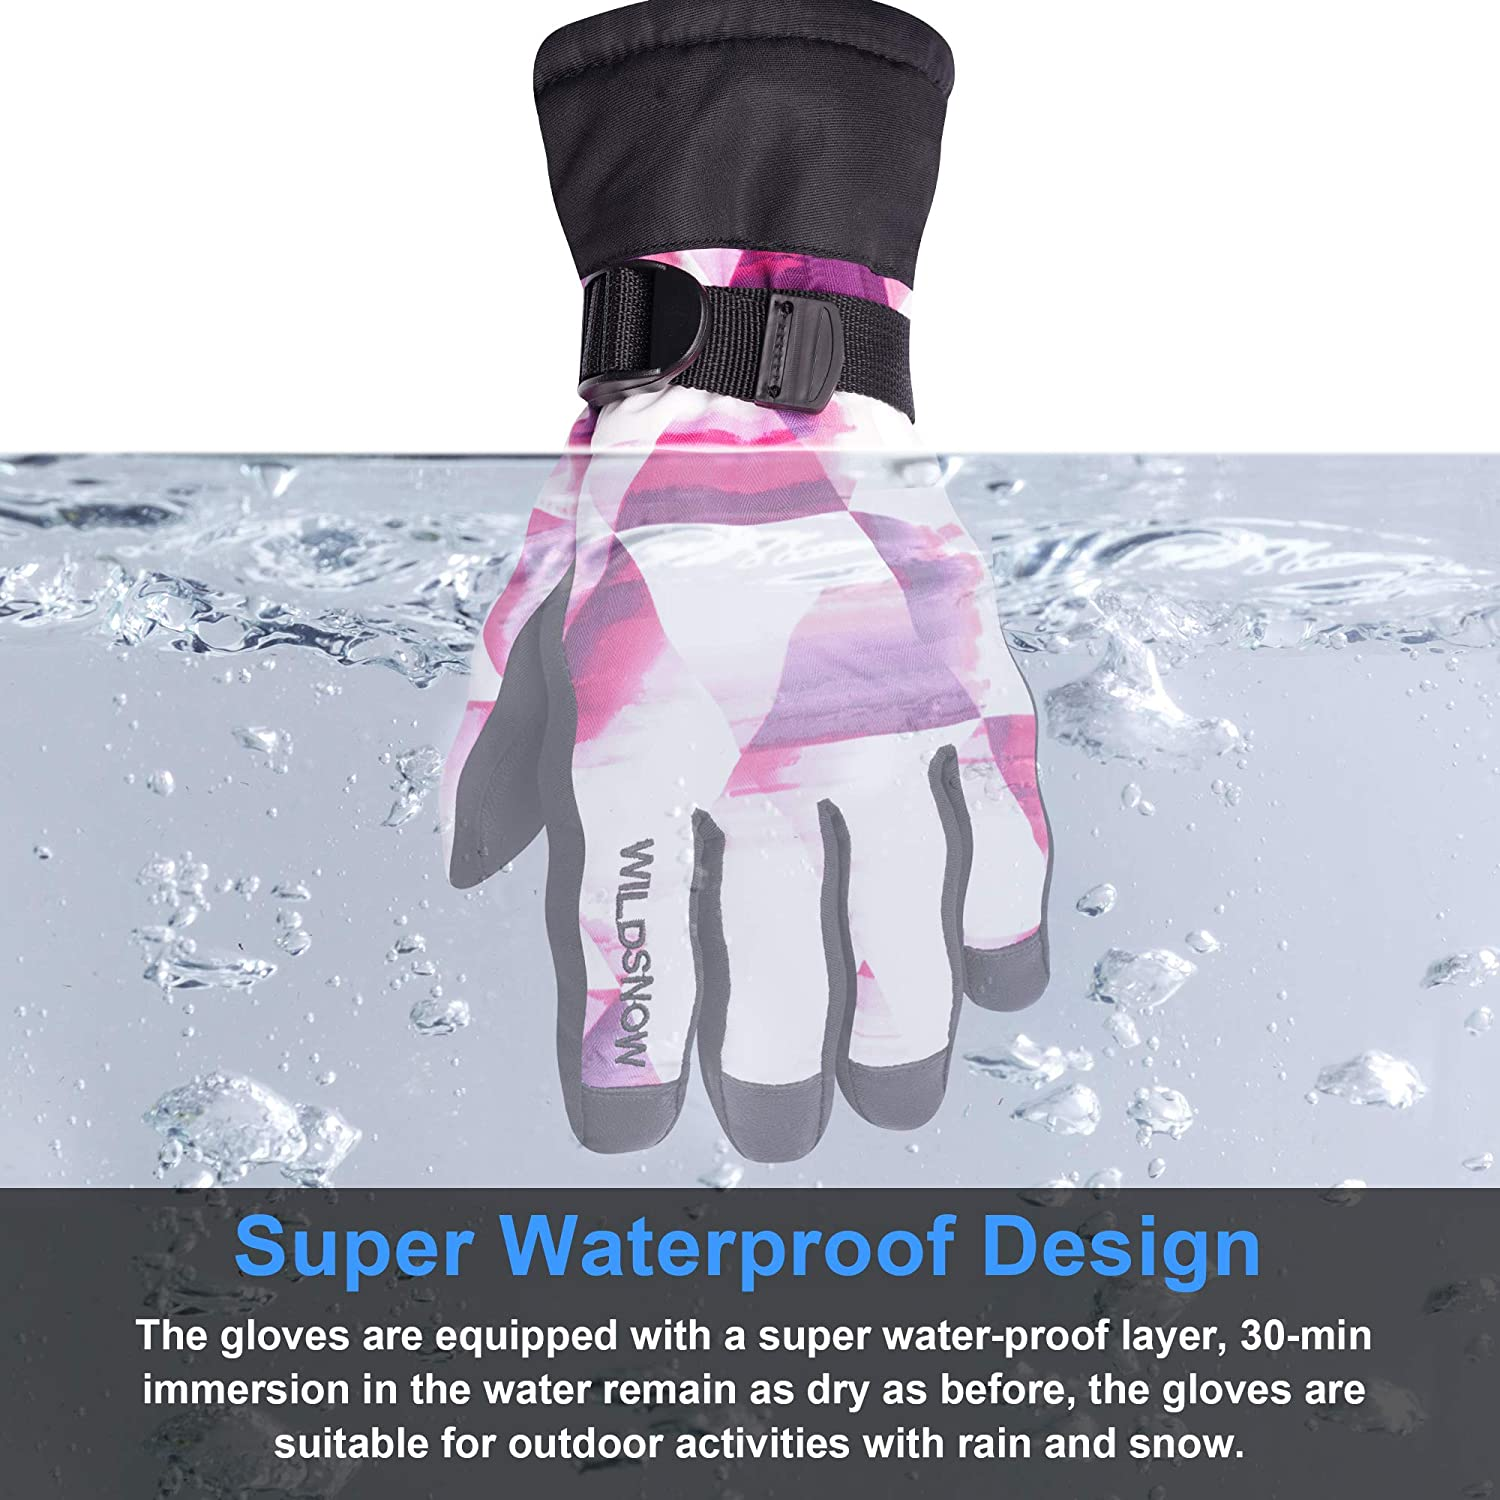 Water-Resistant and Windproof Gloves for boys and girls Aged 4-14 arteesol Boys Ski Mittens